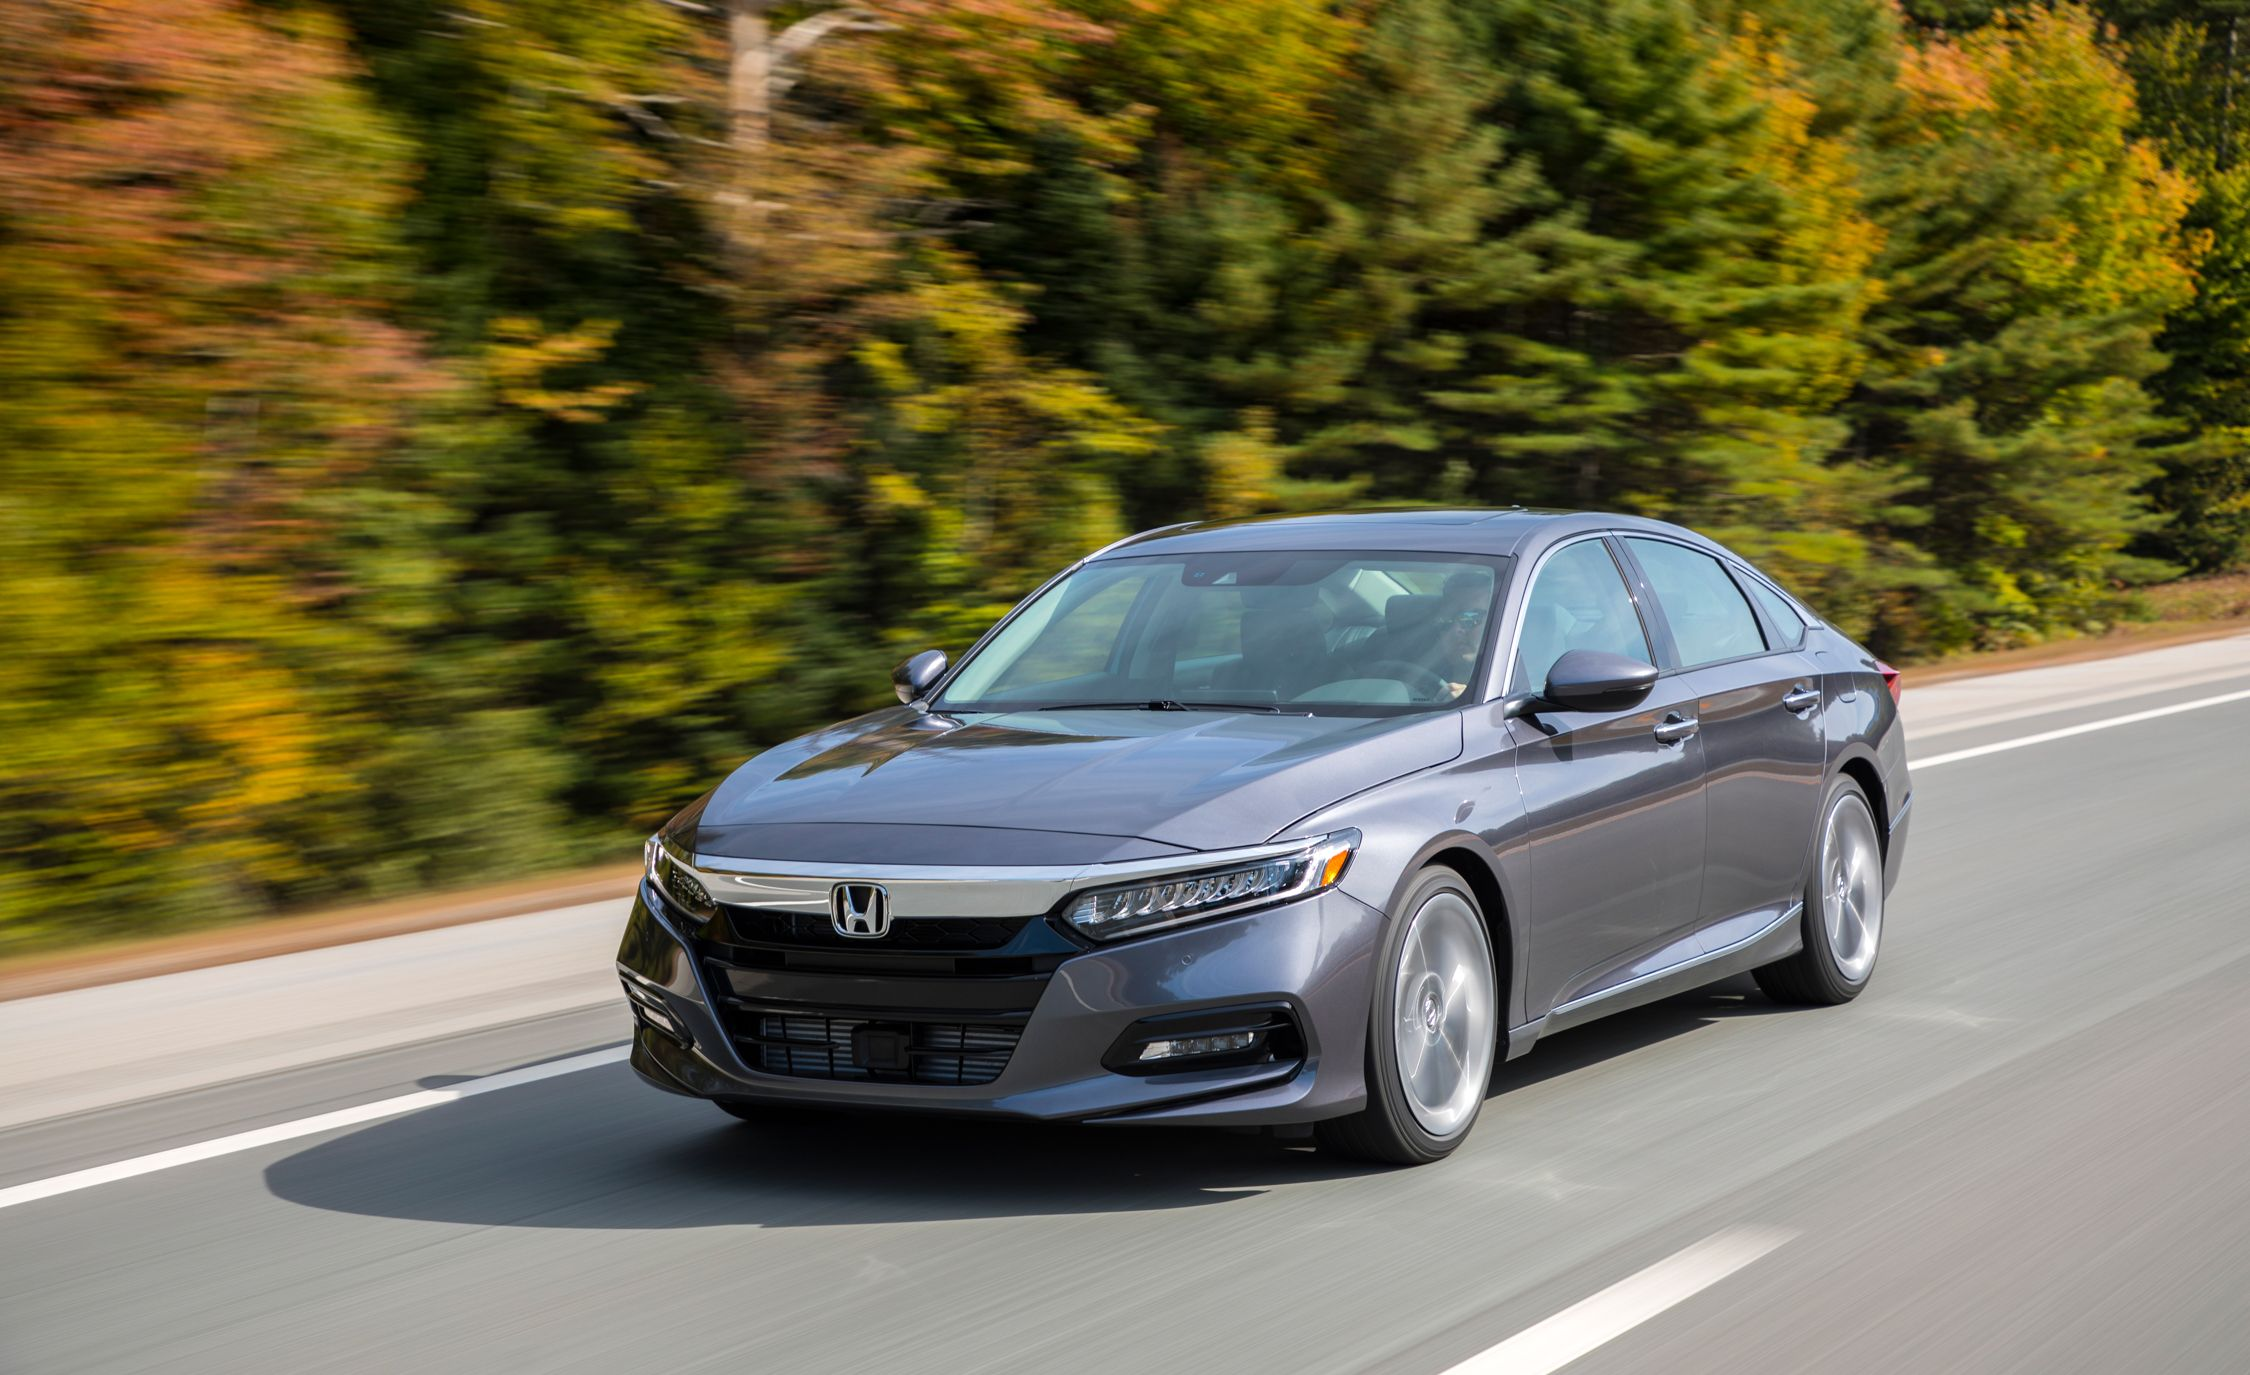 2018 honda accord sedan pictures photo gallery car and for 2018 honda accord manual transmission